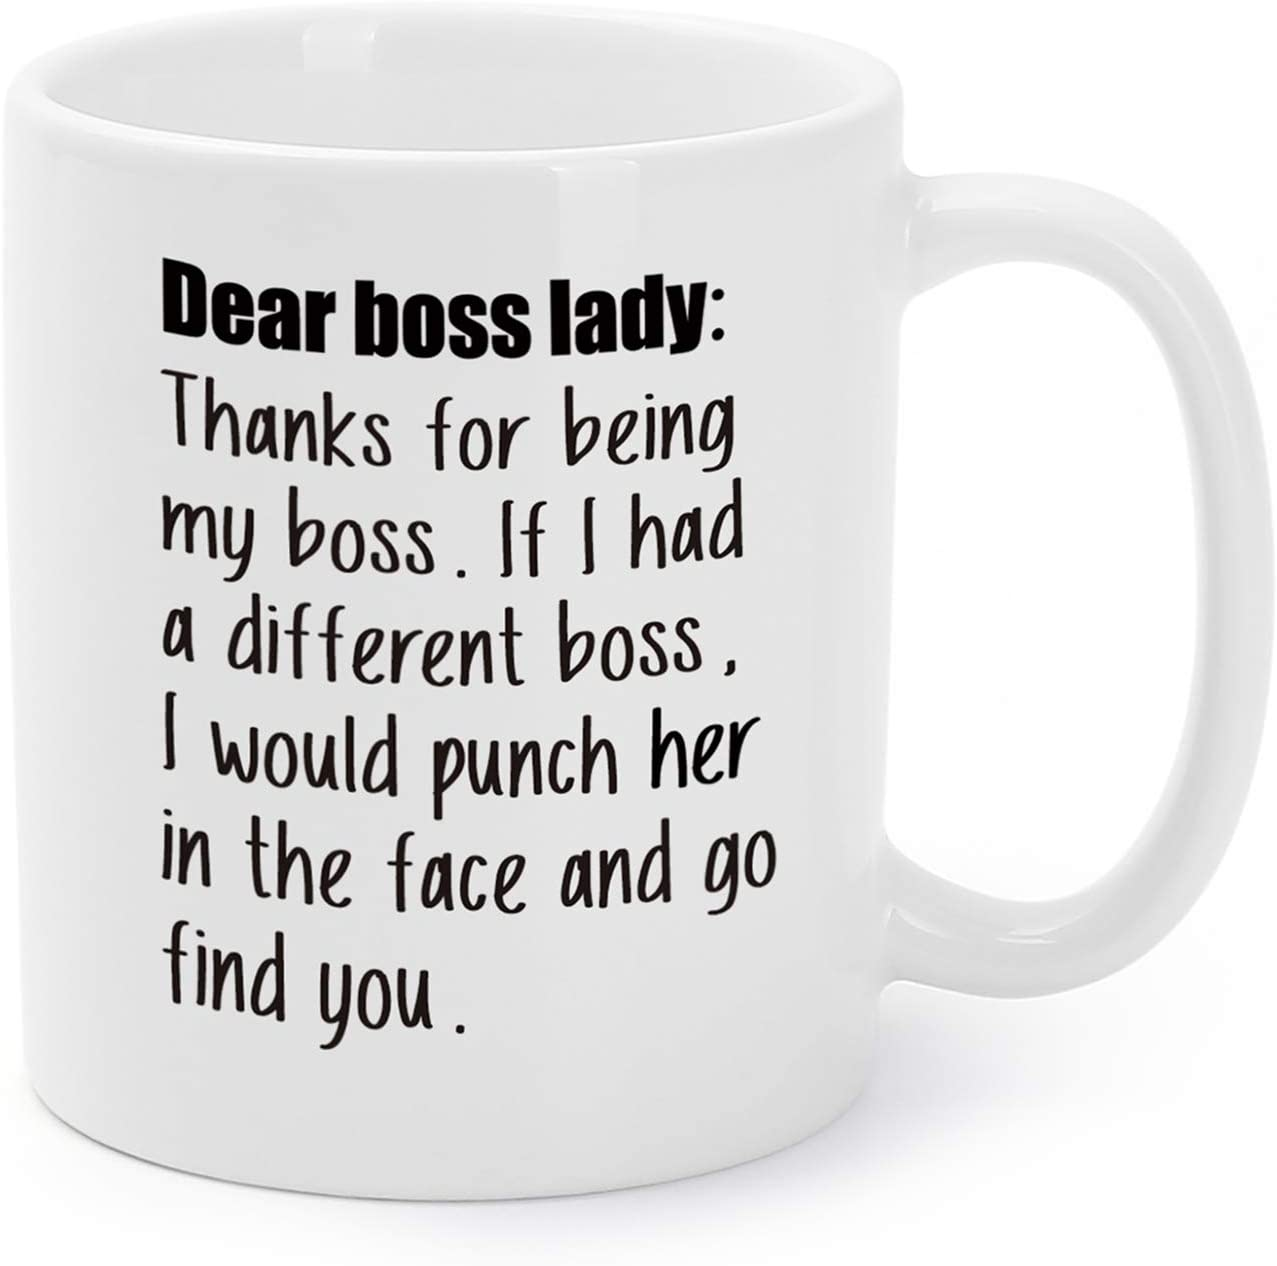 Mugaholics Boss's Day Gift Mugs Thanks For Being My Boss Coffee Cups Christmas/Birthday/White Elephant/Office Holiday Party Presents/Gag Gifts Tea Cups For Girls/Ladies/Madams/Women 11 Oz BS-3